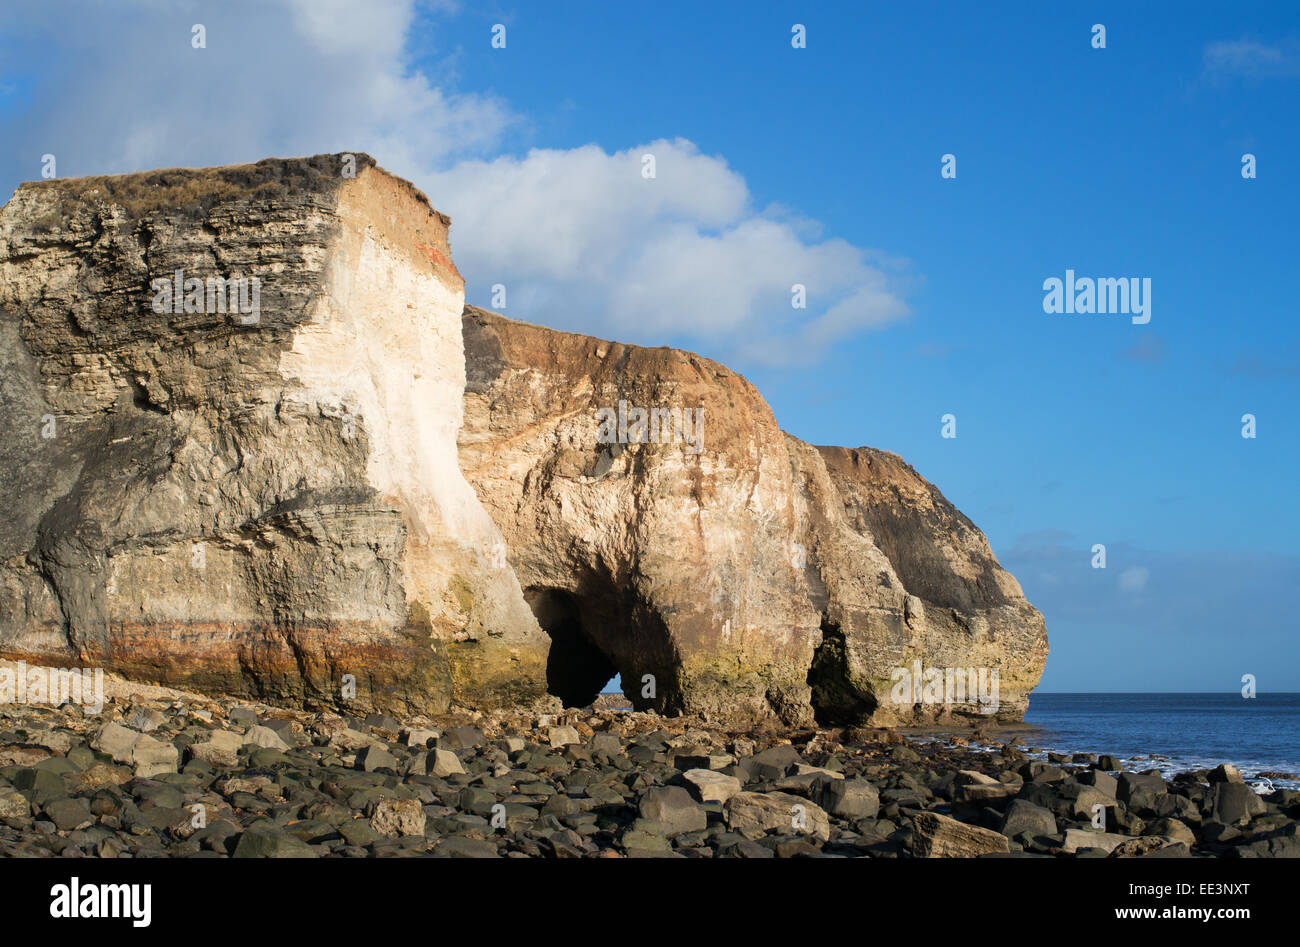 Magnesium or magnesian limestone cliffs and caves at Nose's Point, Seaham, north east England, UK - Stock Image